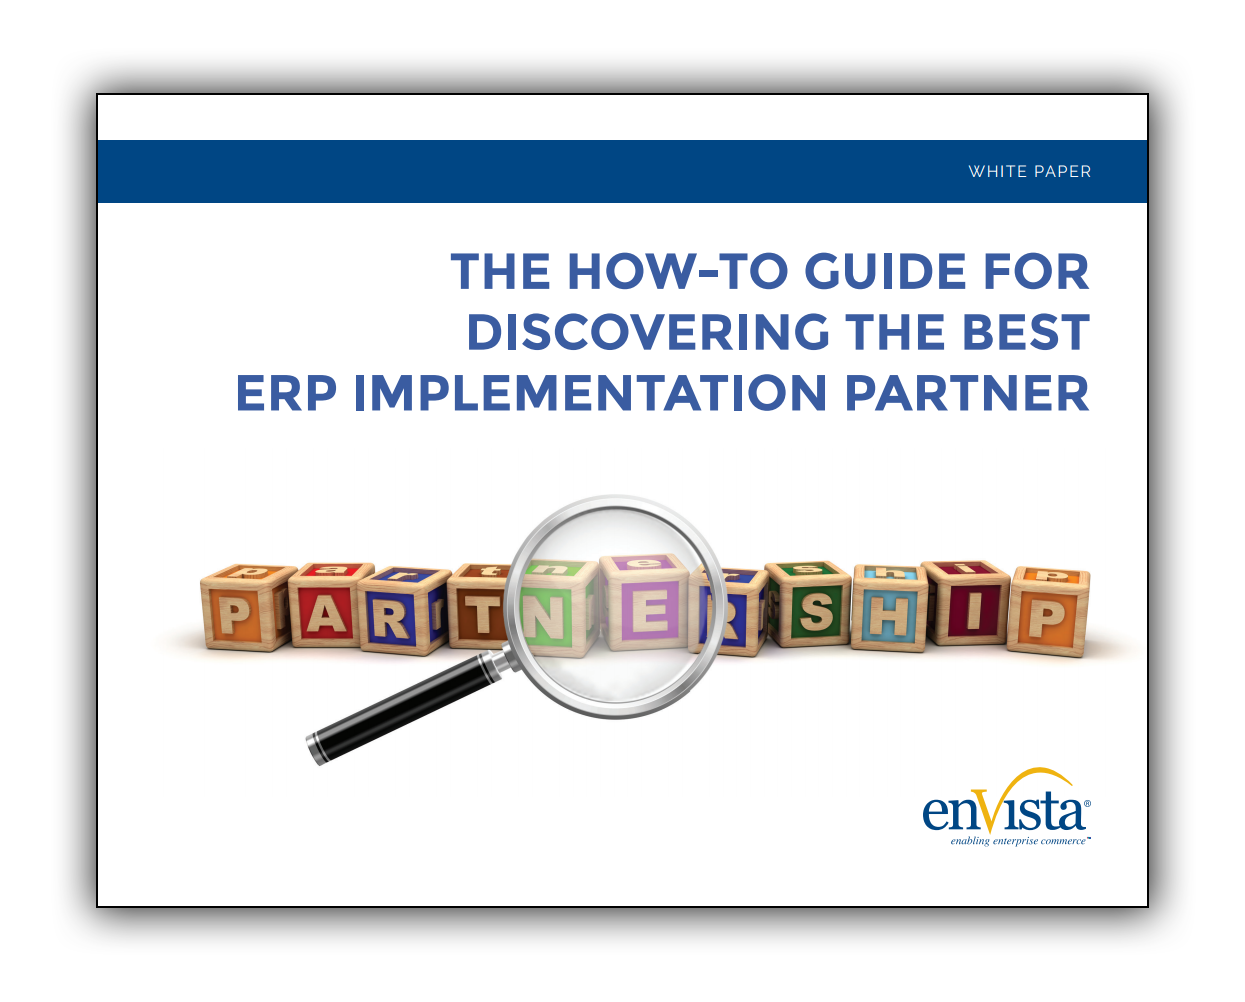 Image_how-to-guide-for-discovering-the-best-erp-implementation-partner.png